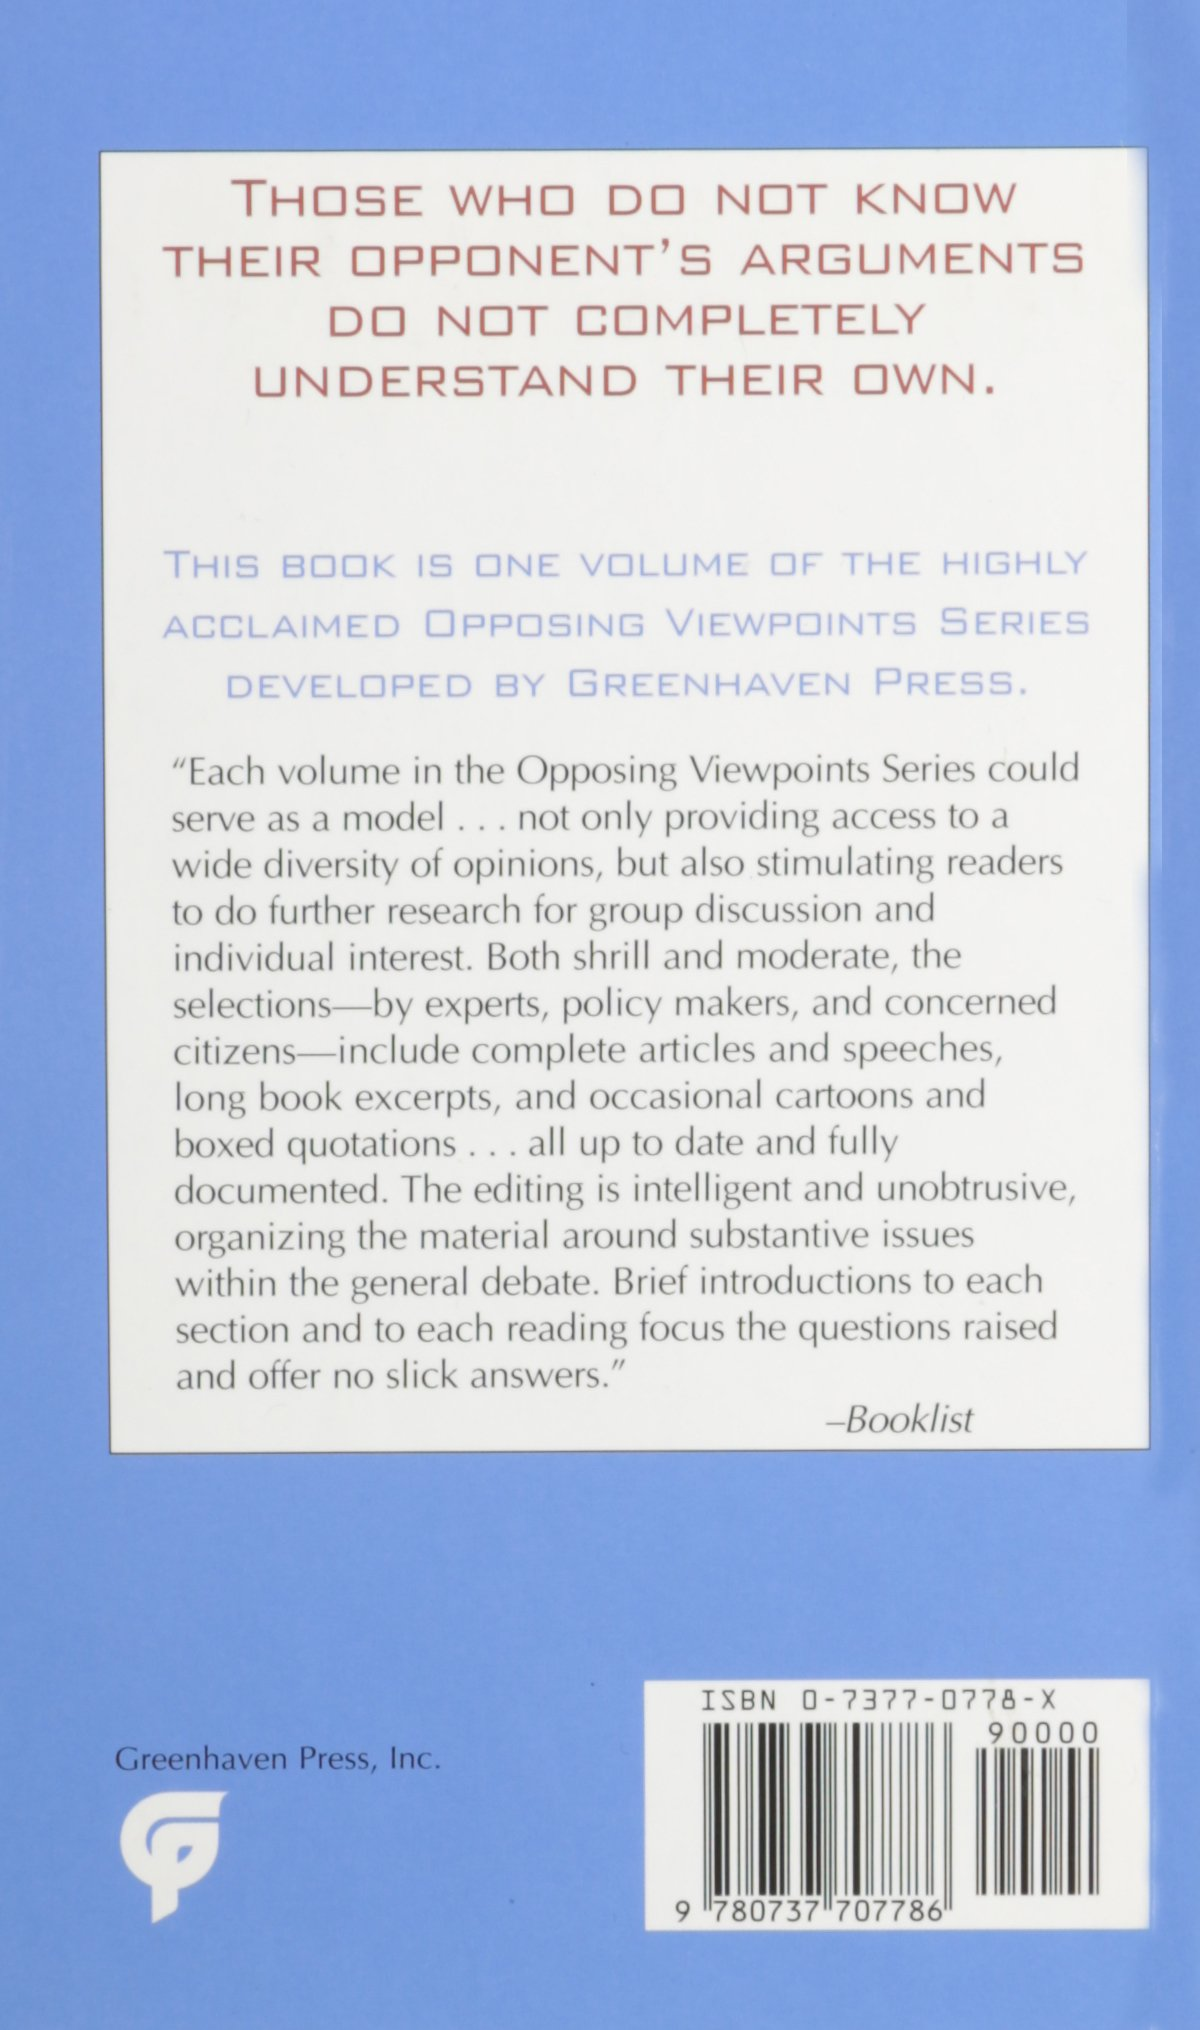 opposing viewpoints series abortion hardcover edition mary e opposing viewpoints series abortion hardcover edition mary e williams 9780737707786 com books